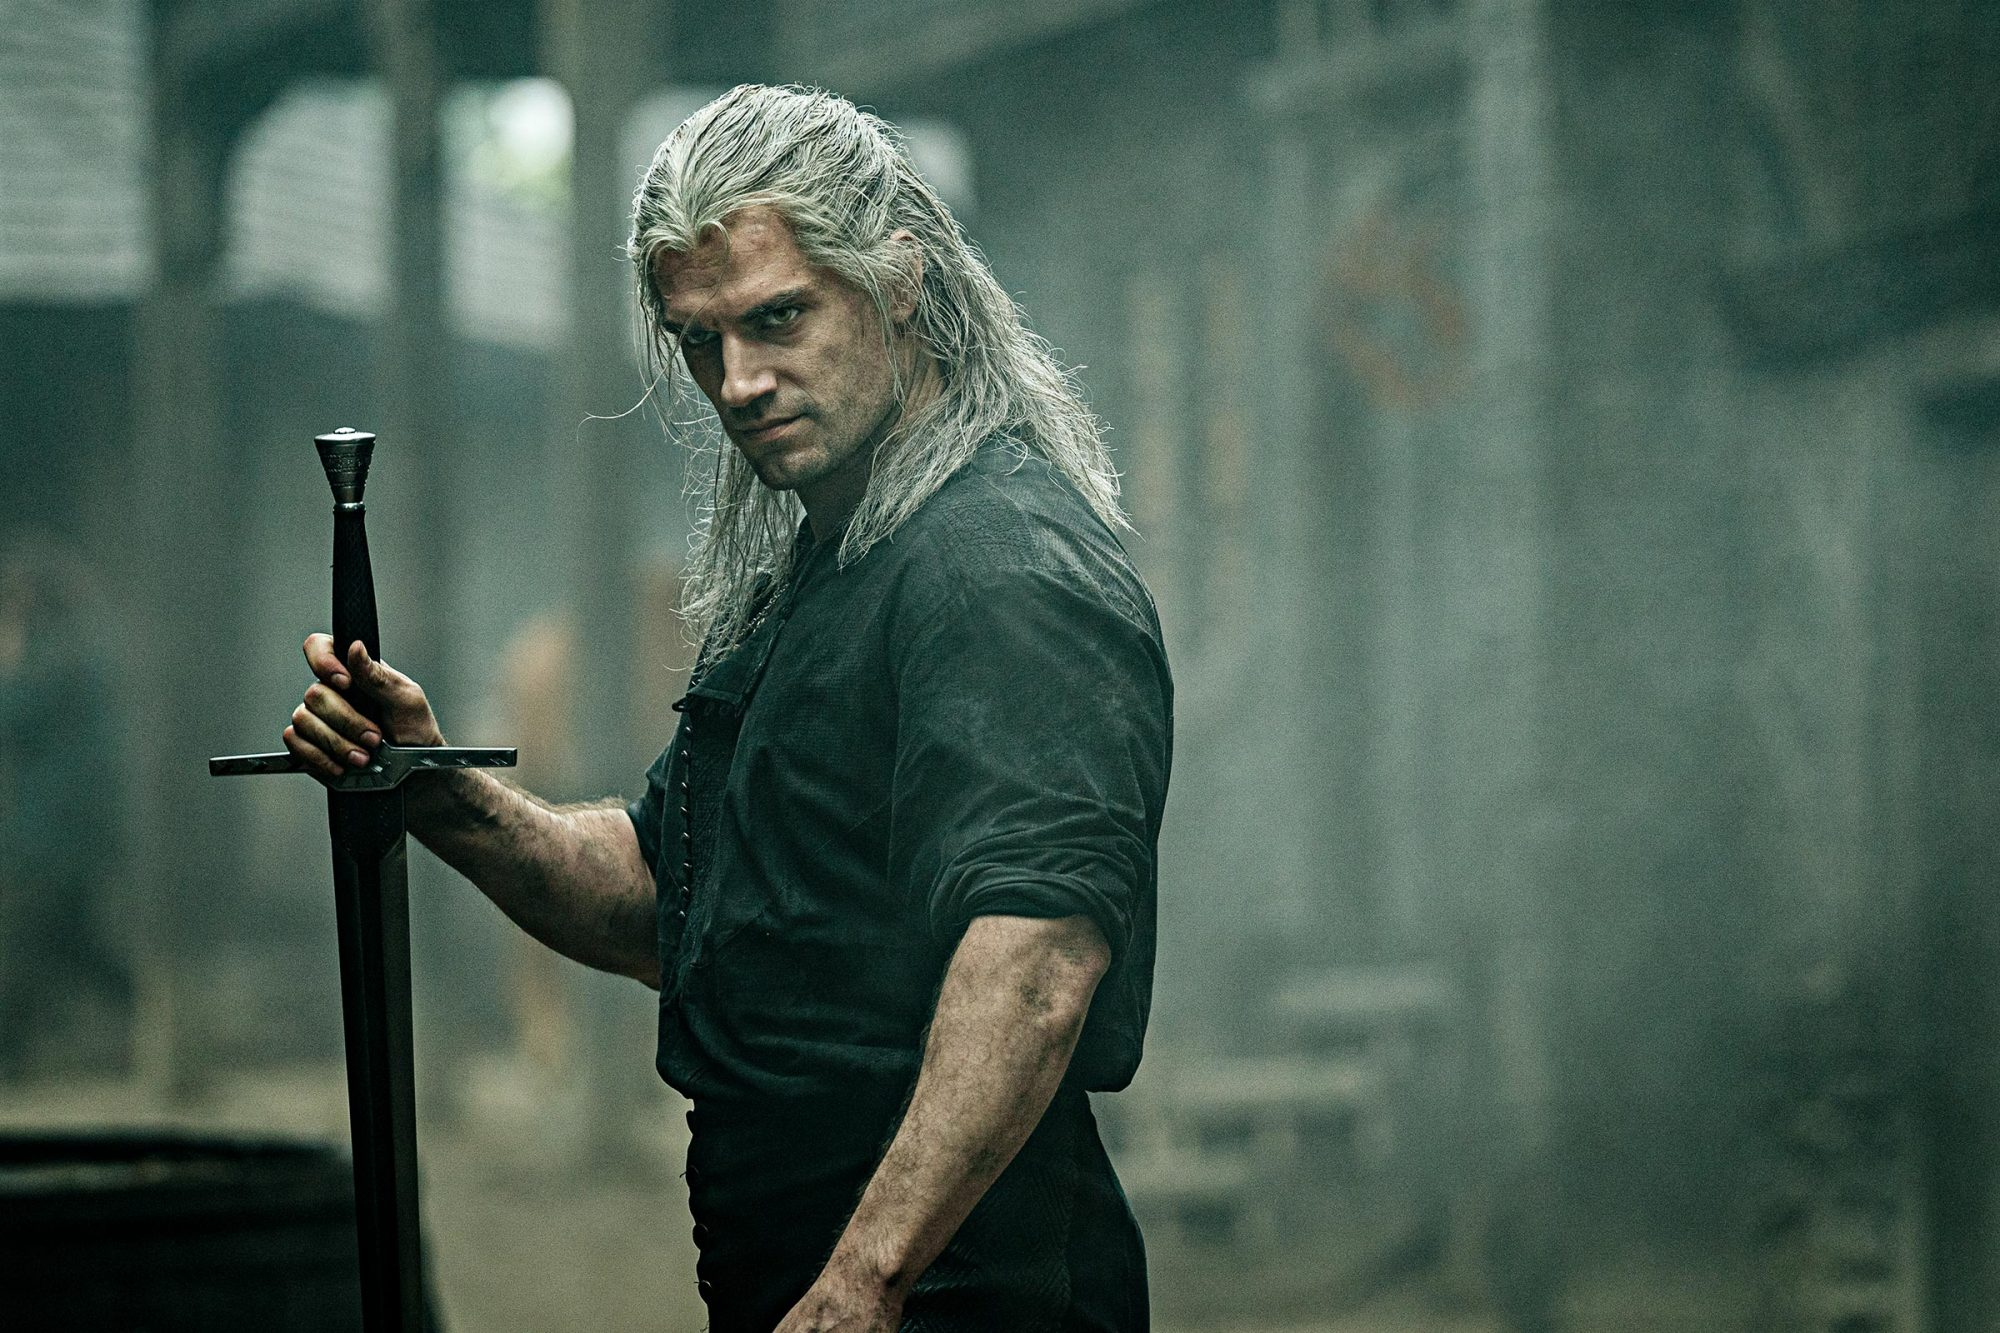 the witcher prequel in the works